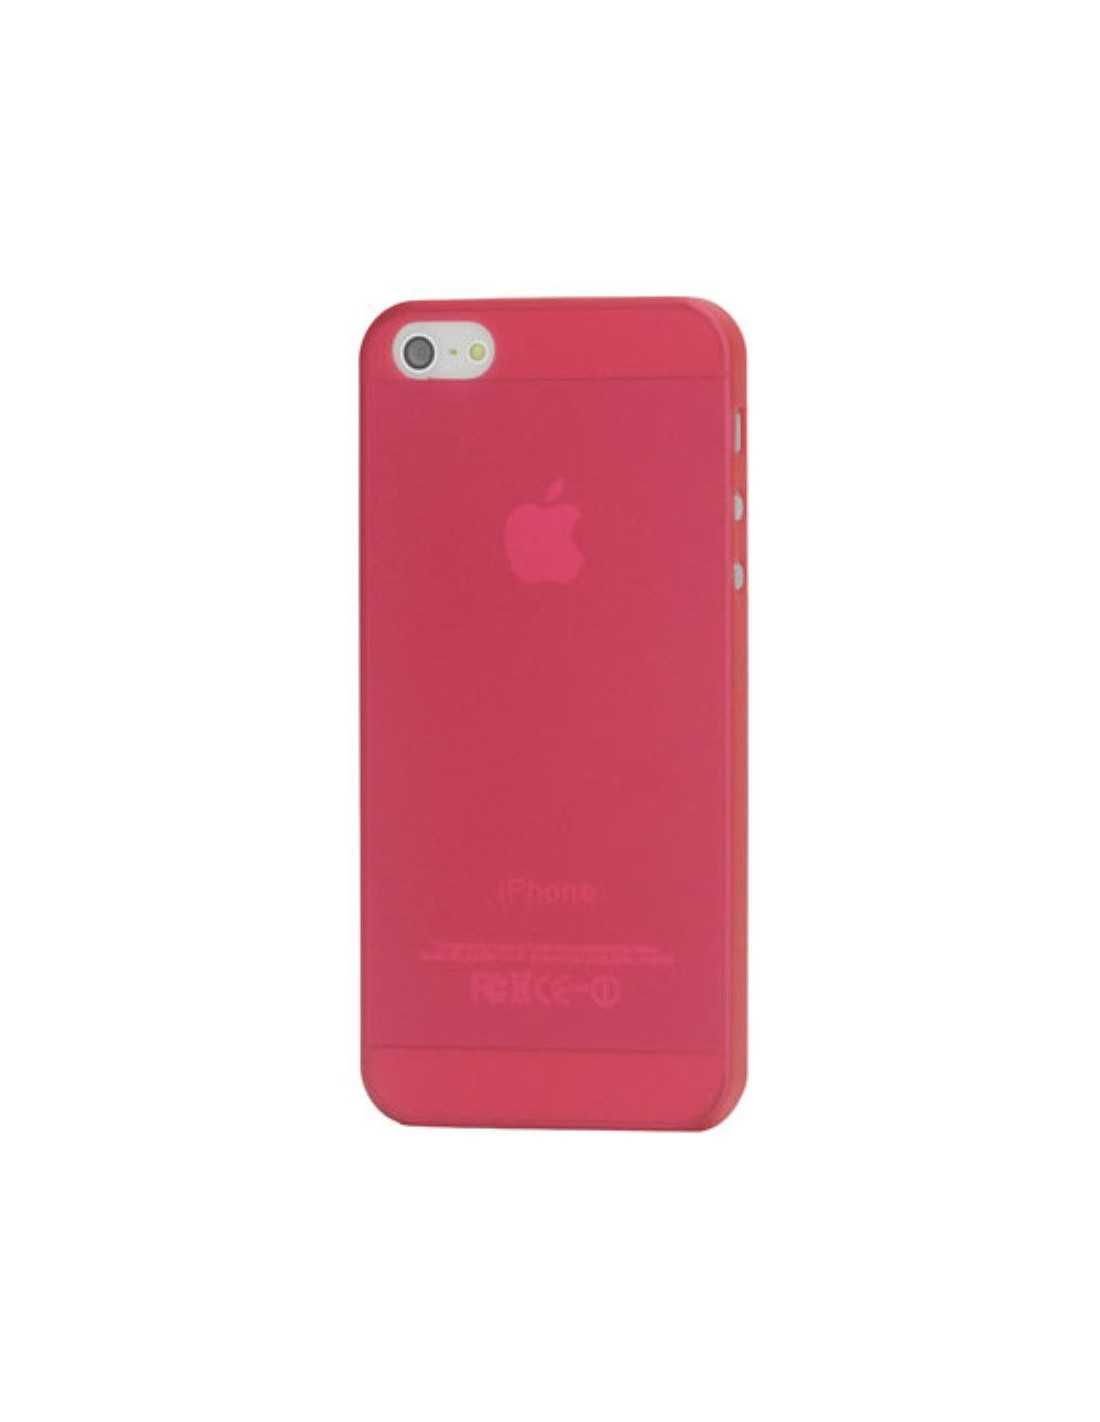 Coque Apple iPhone 5 5s ultrafine en silicone Rouge